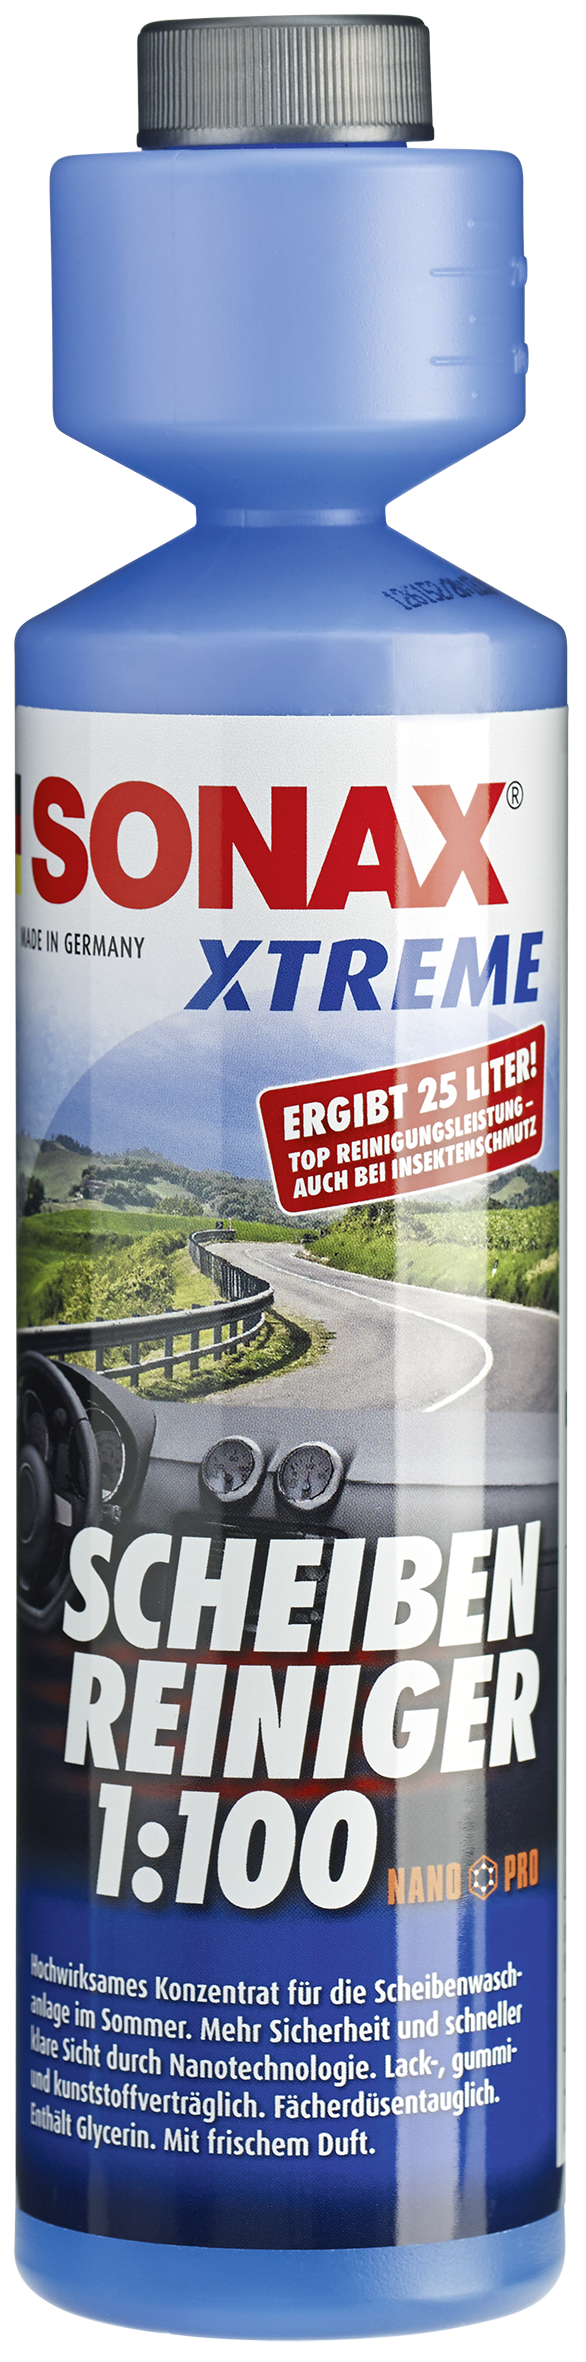 sonax 271141 xtreme scheiben reiniger 1 100 nanopro 250ml. Black Bedroom Furniture Sets. Home Design Ideas